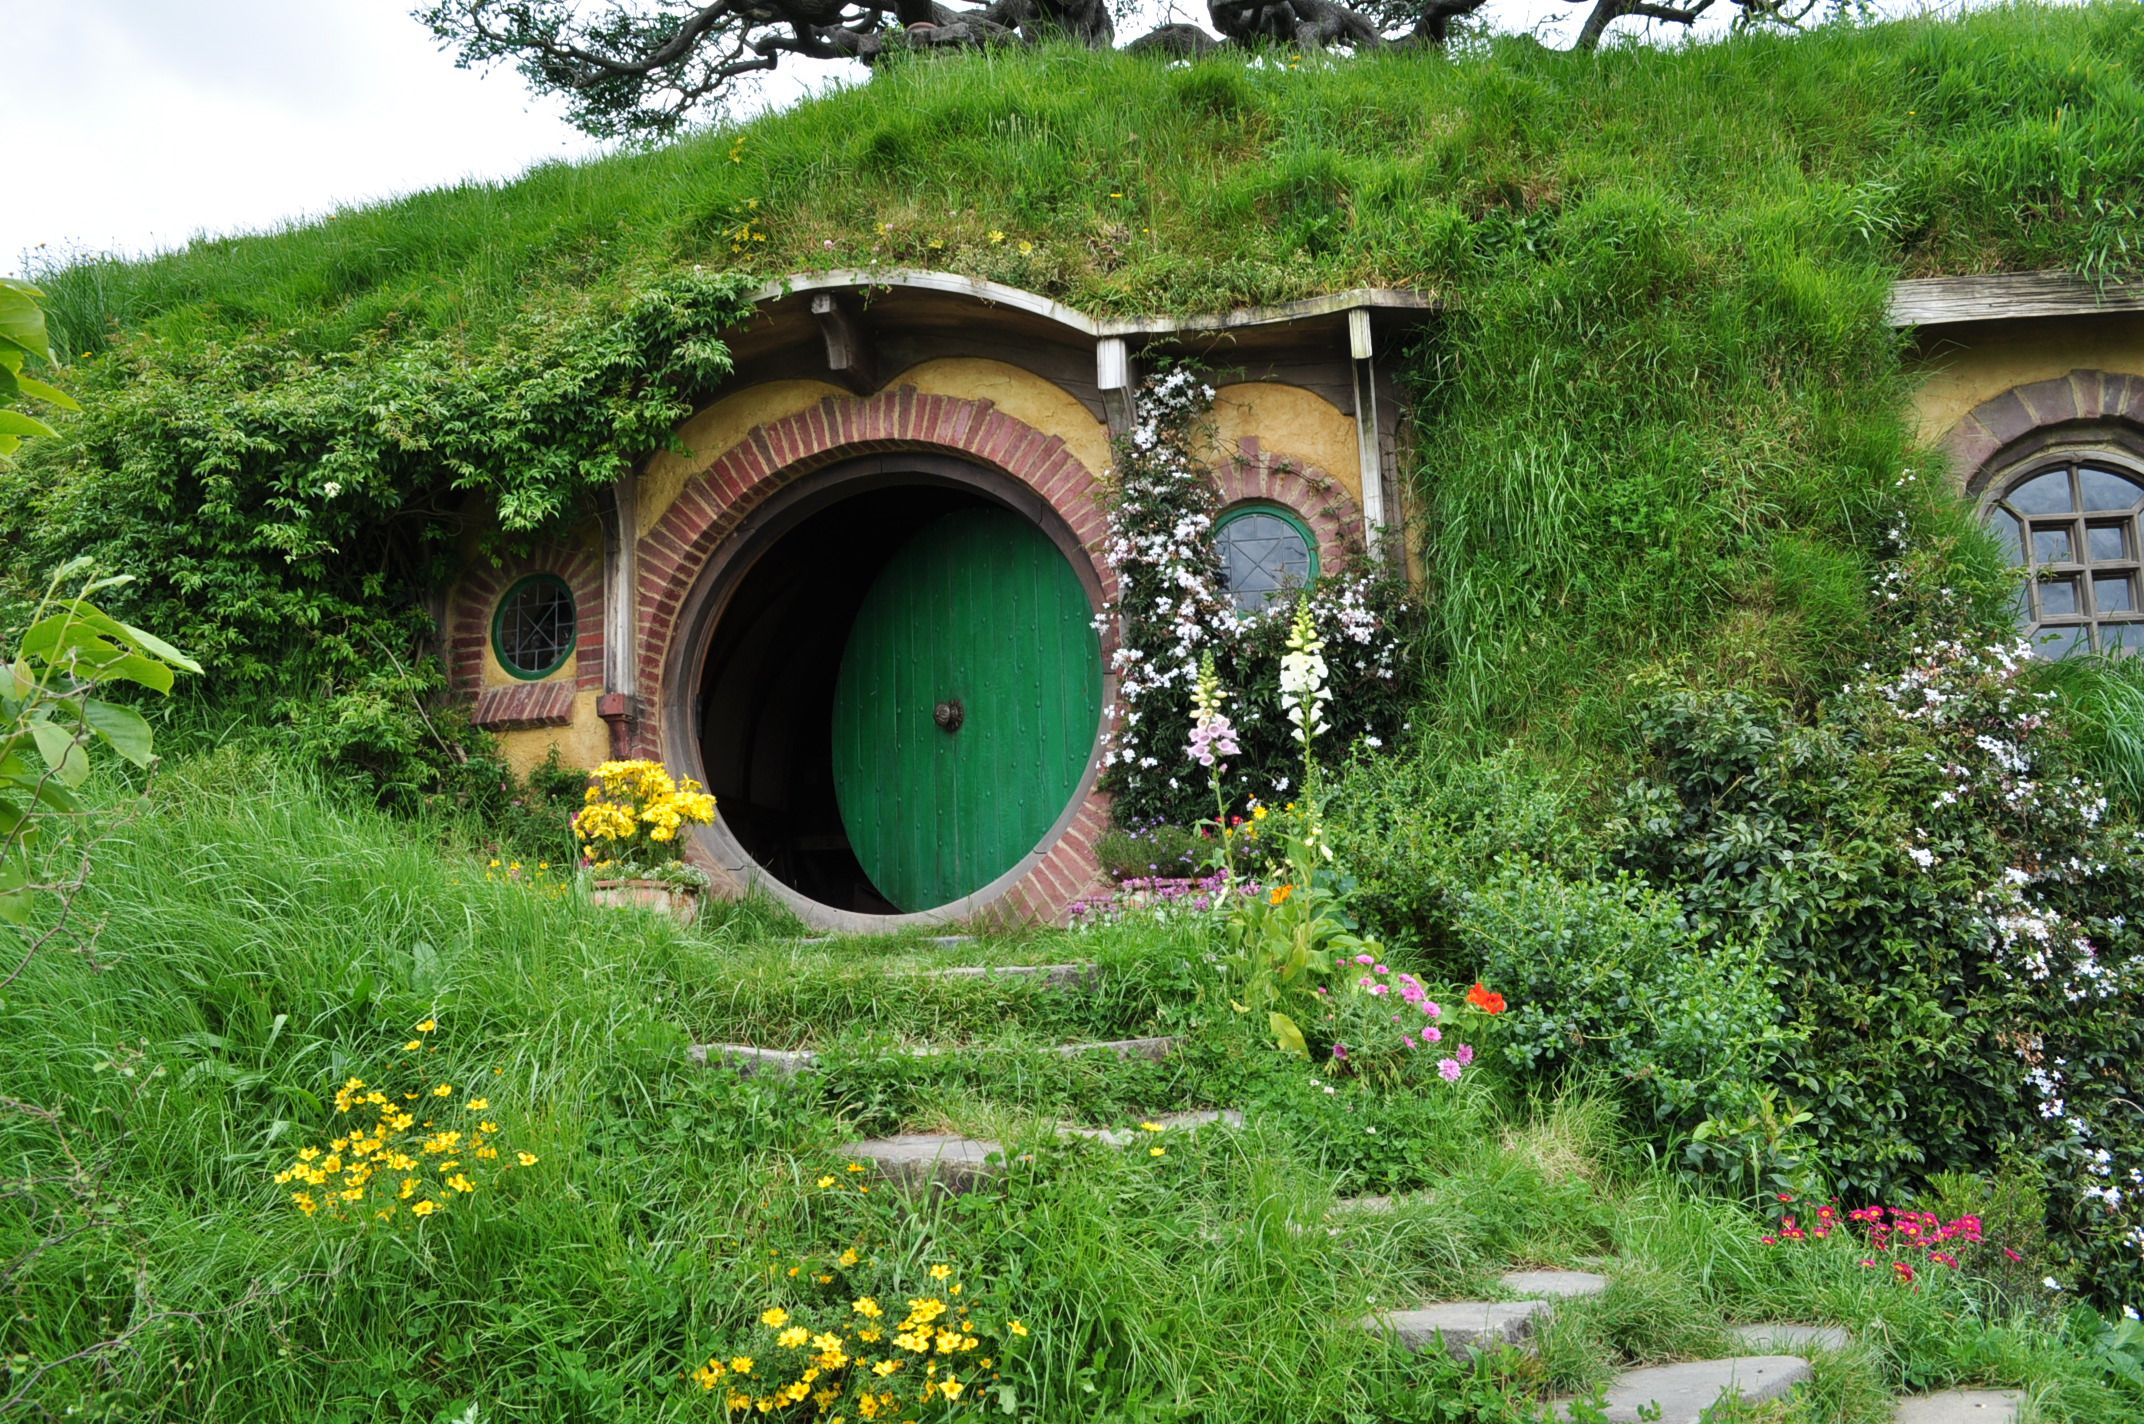 Architecture : Hobbit House Design With Round Door And Window Underground  Hobbit House In New Zealand